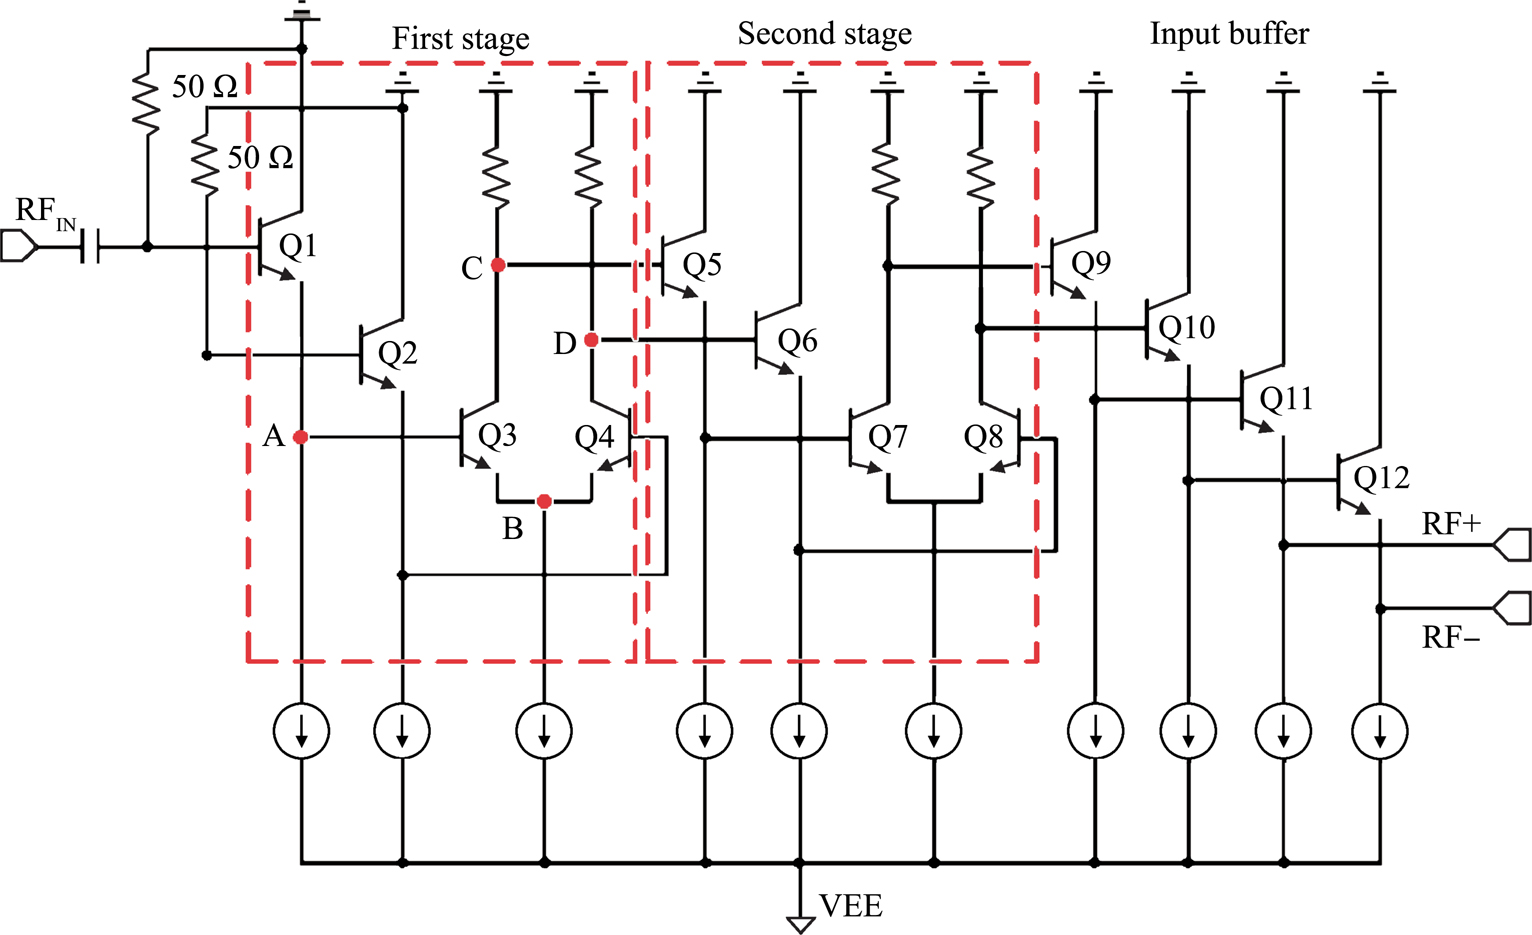 A 75 Ghz Regenerative Dynamic Frequency Divider With Active Rf Buffer Stage Figure 3